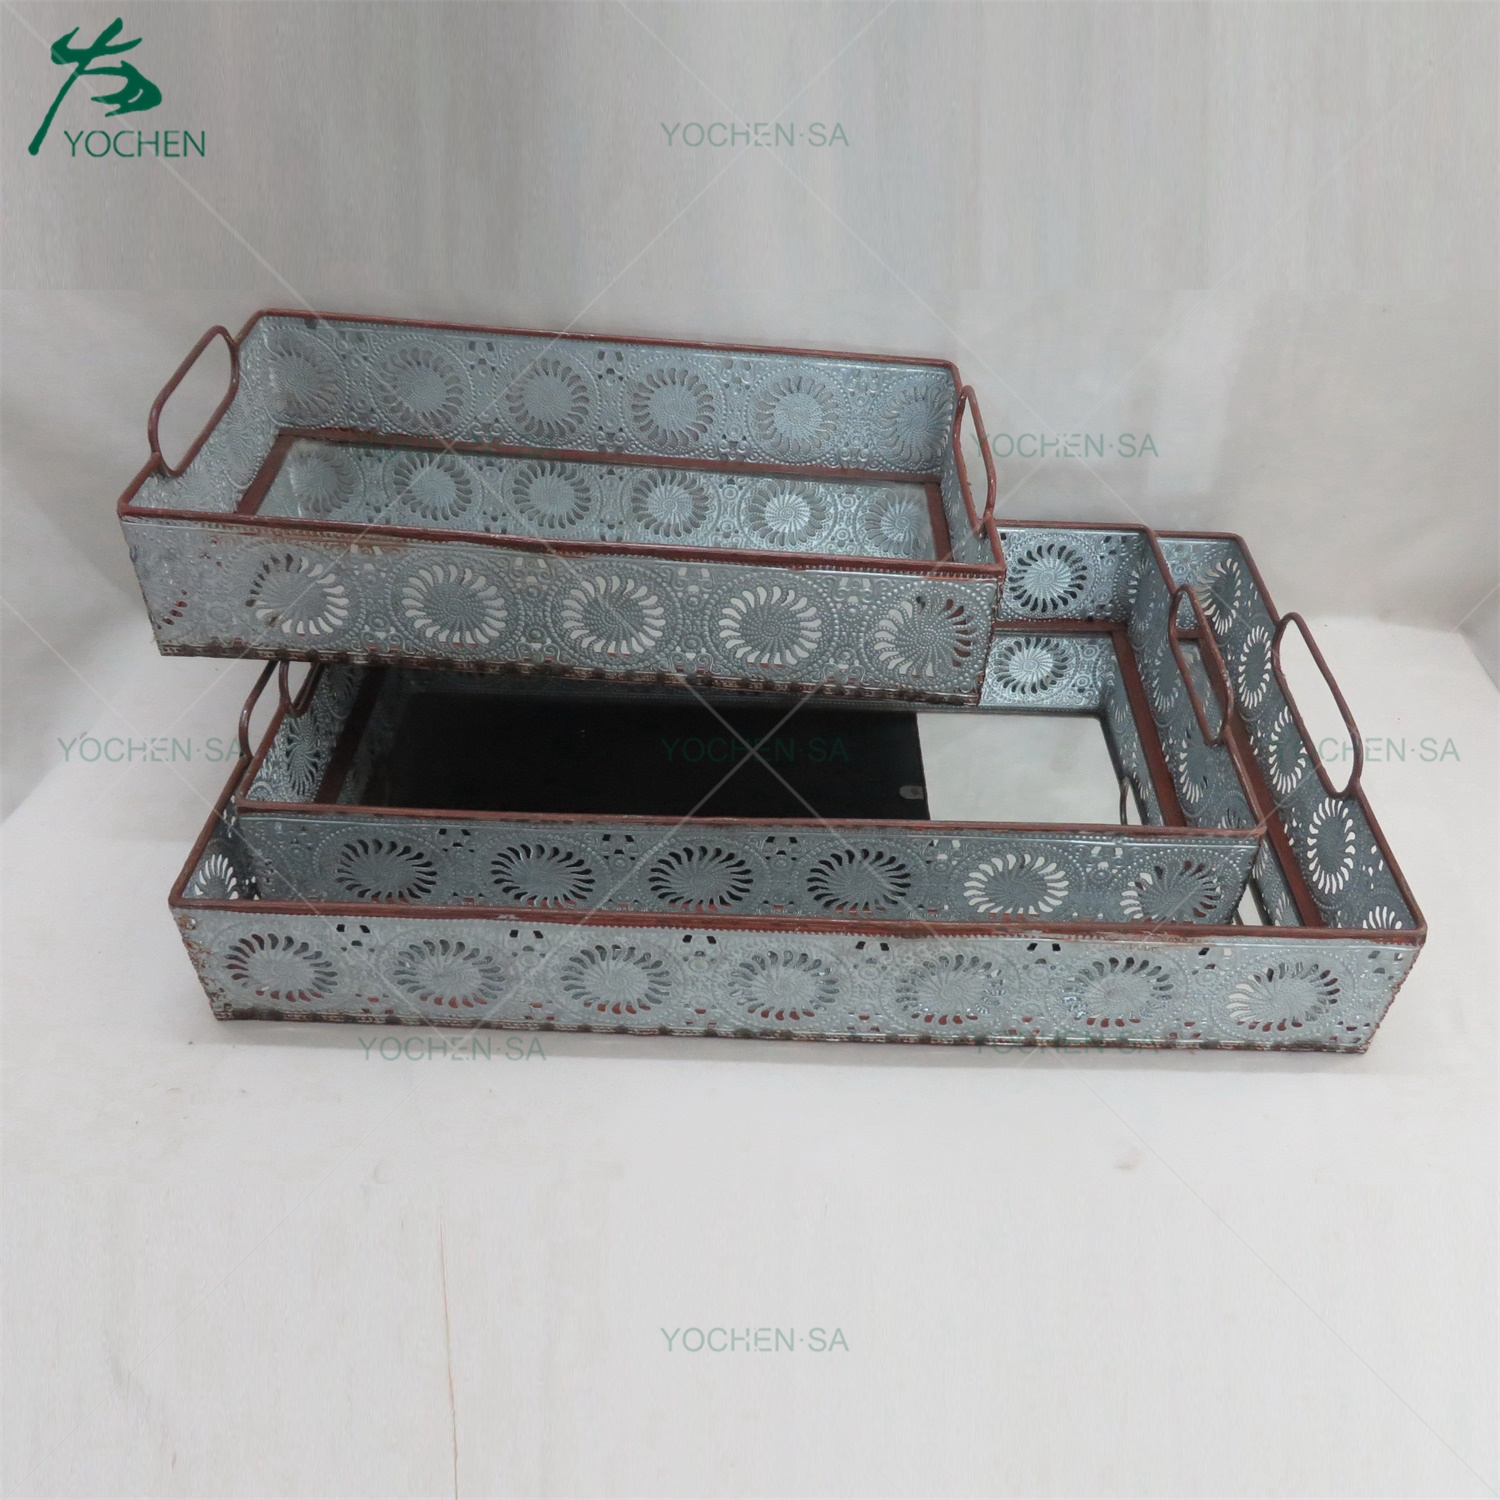 Vintage Metal Rectangular Tray with Mirror Face and Handle Set 3